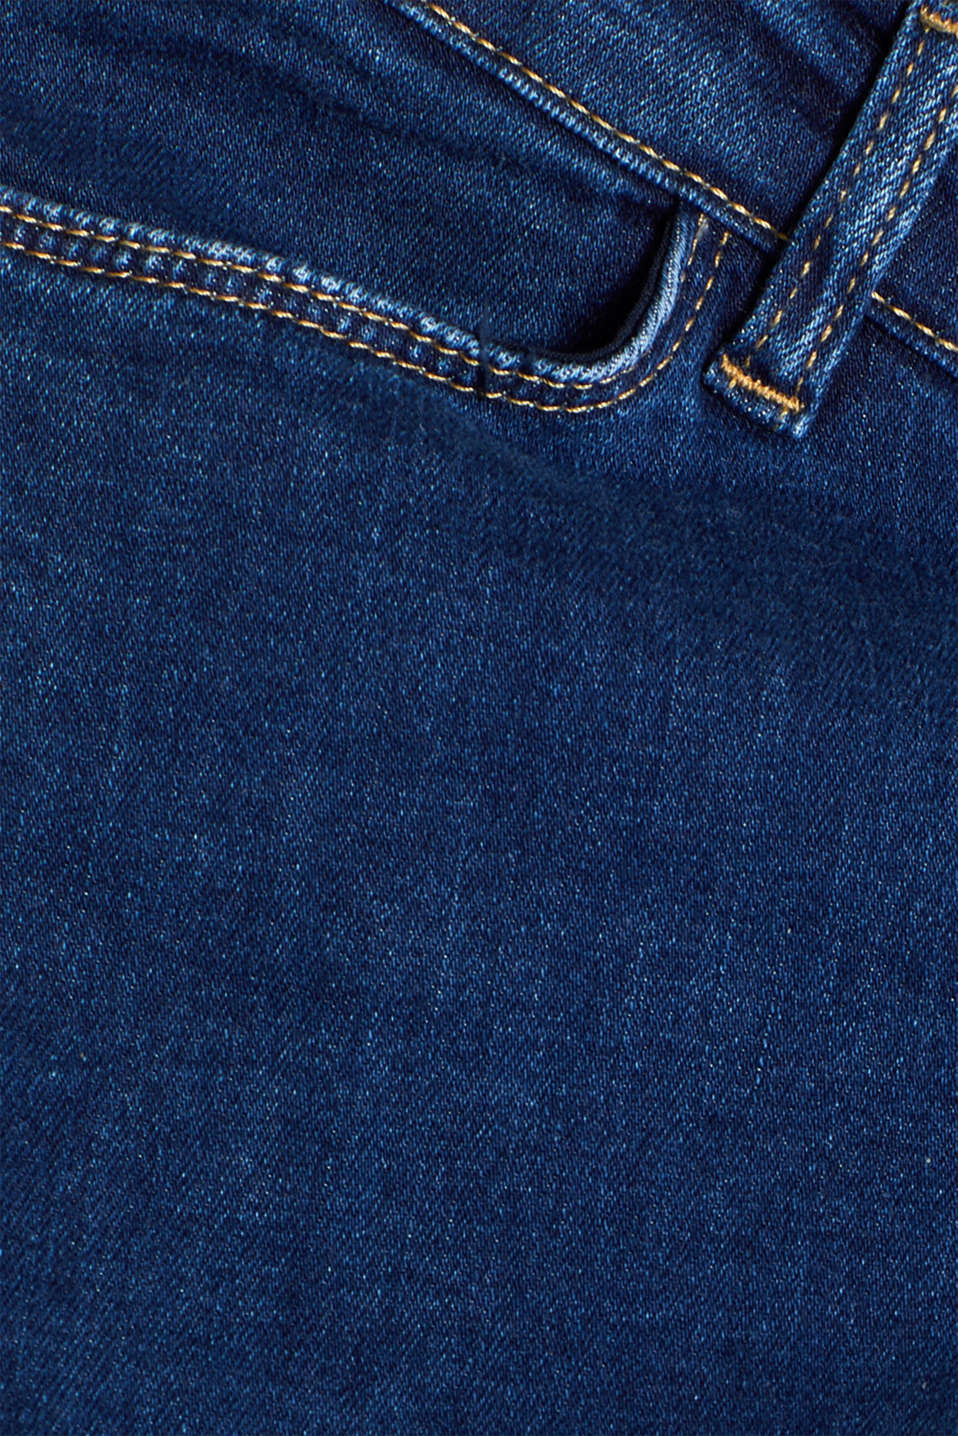 Ankle-length stretch jeans with an above-bump waistband, LCDARKWASH, detail image number 4